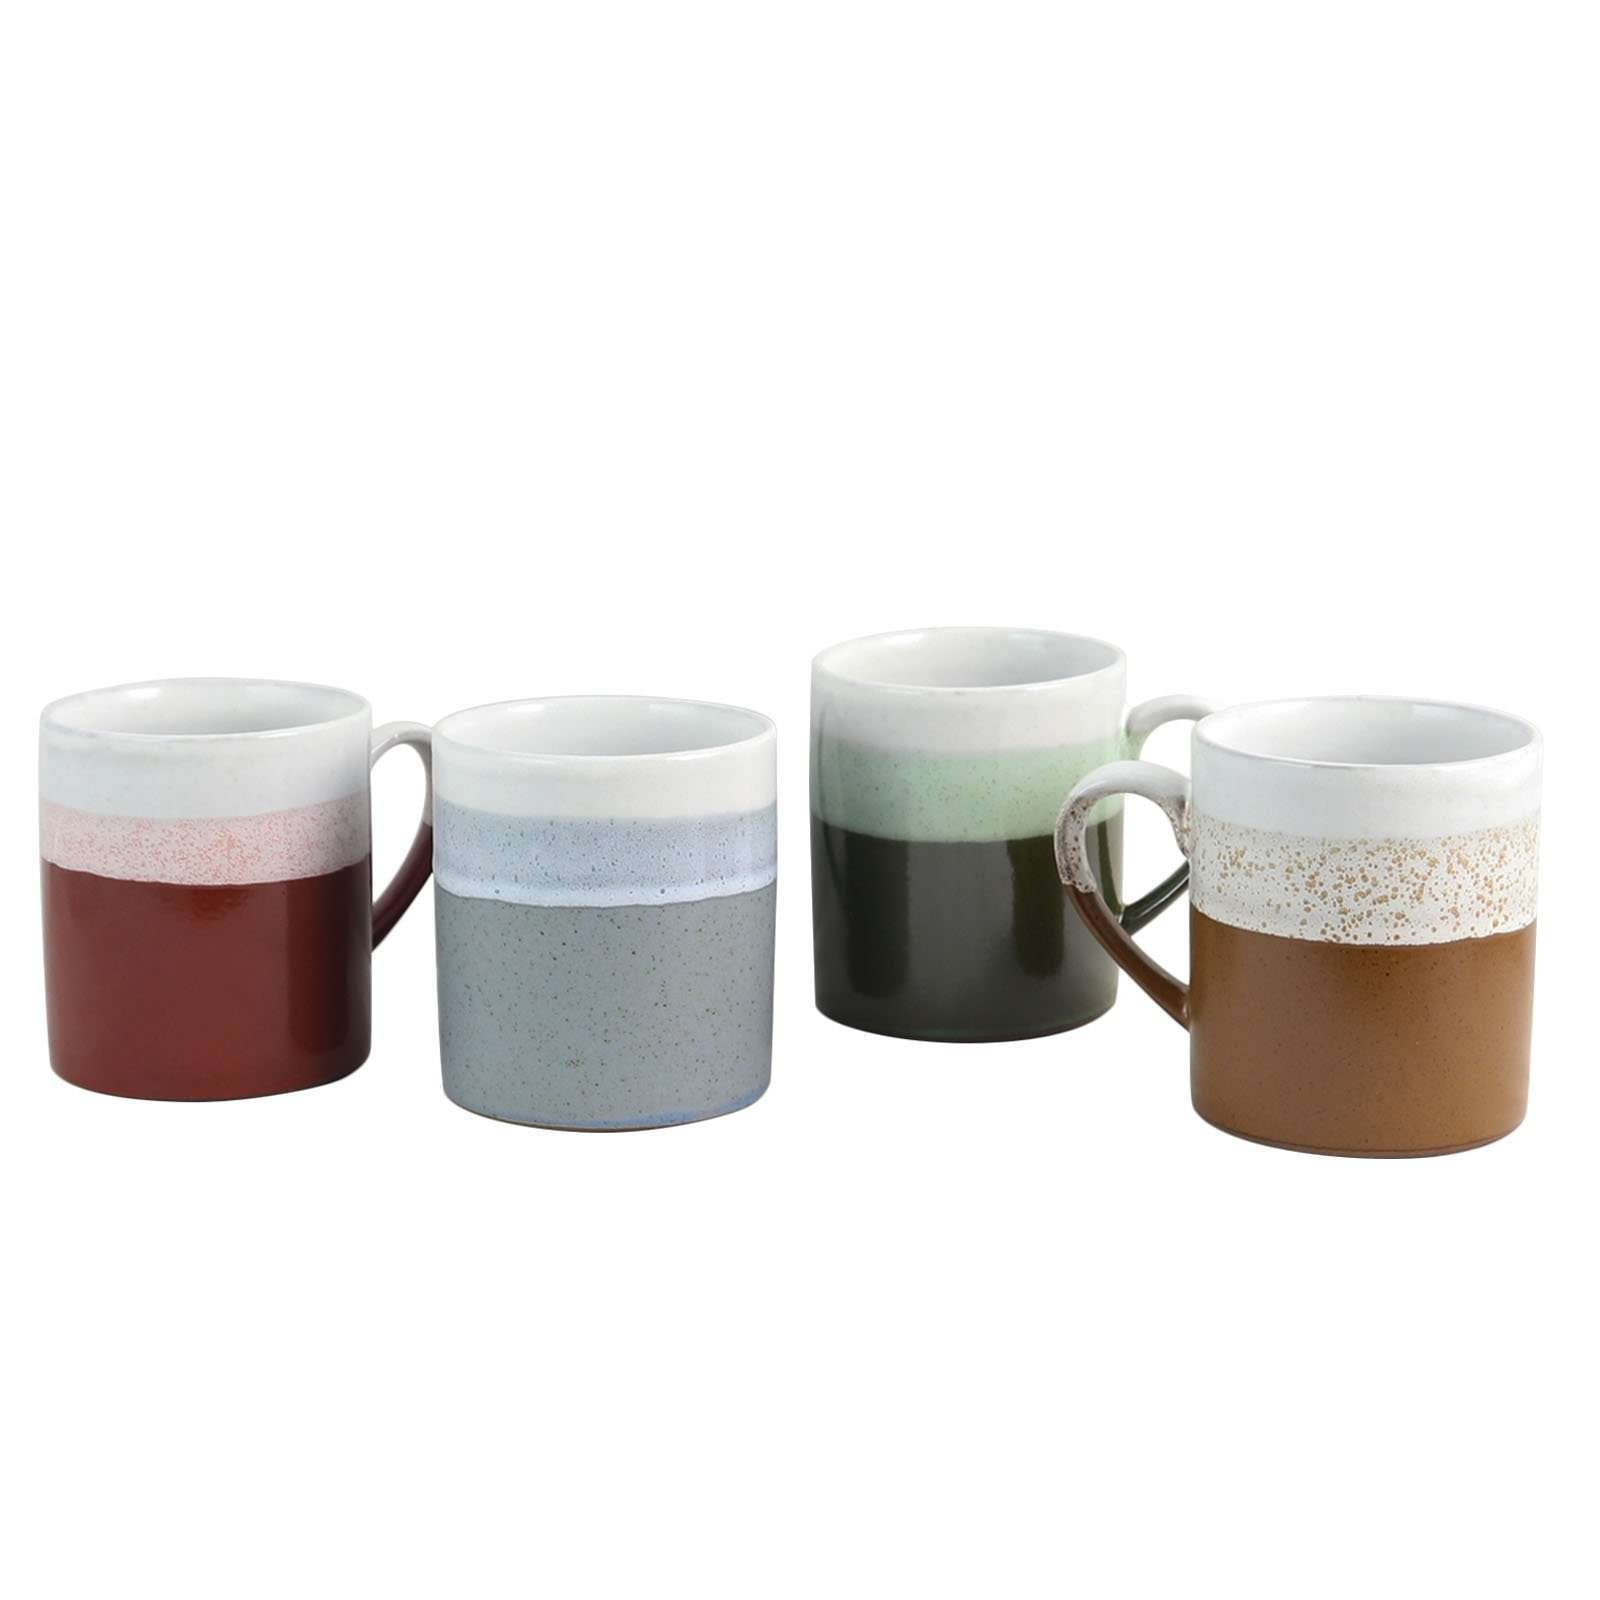 Gibson Home Terra Firma 23 oz. Mug Set in Assorted Colors, Set of 4